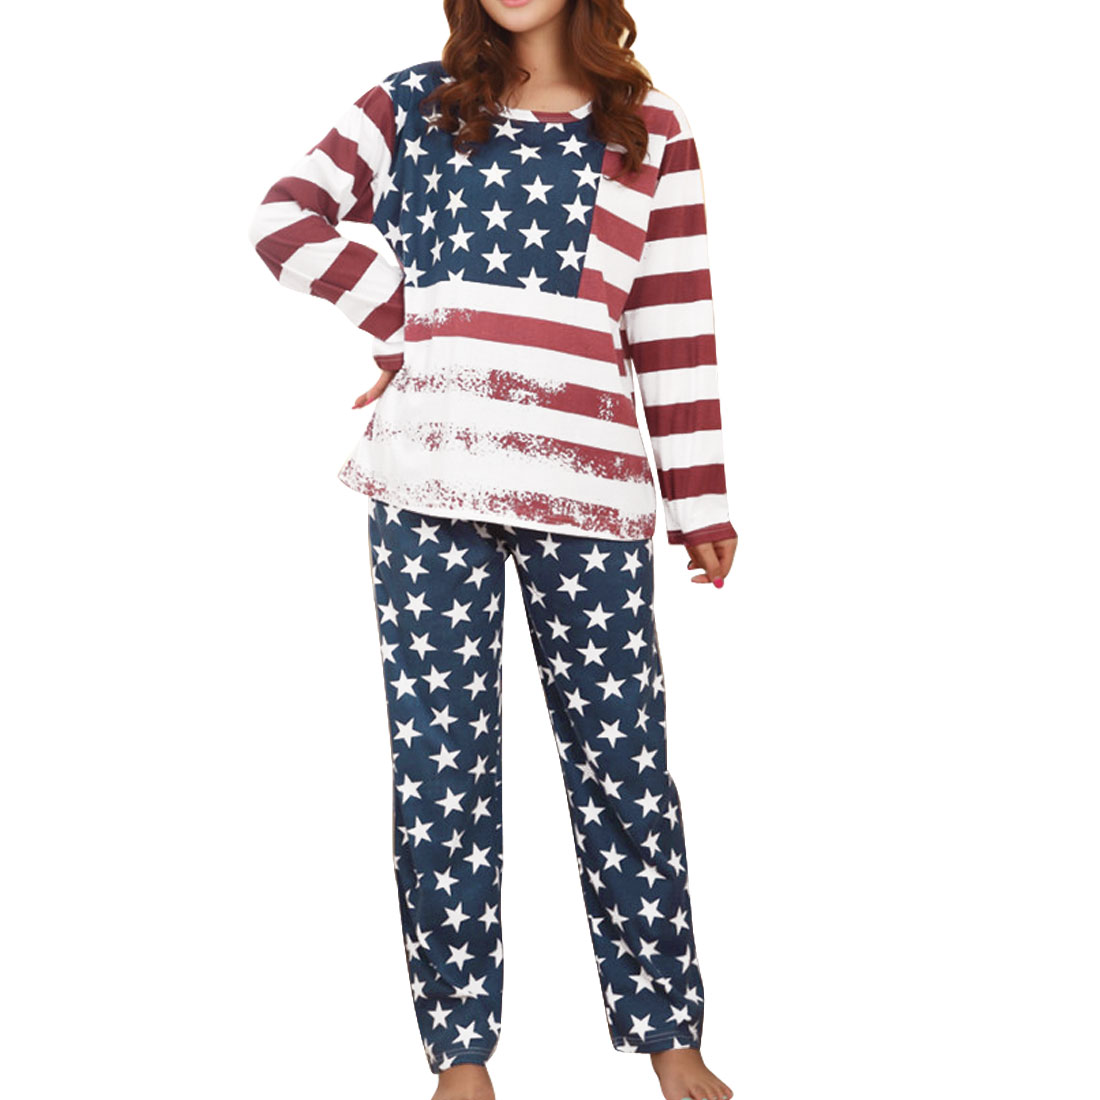 Long Sleeve Navy Blue Red White American Flag Design Pajama Sets S for Ladies